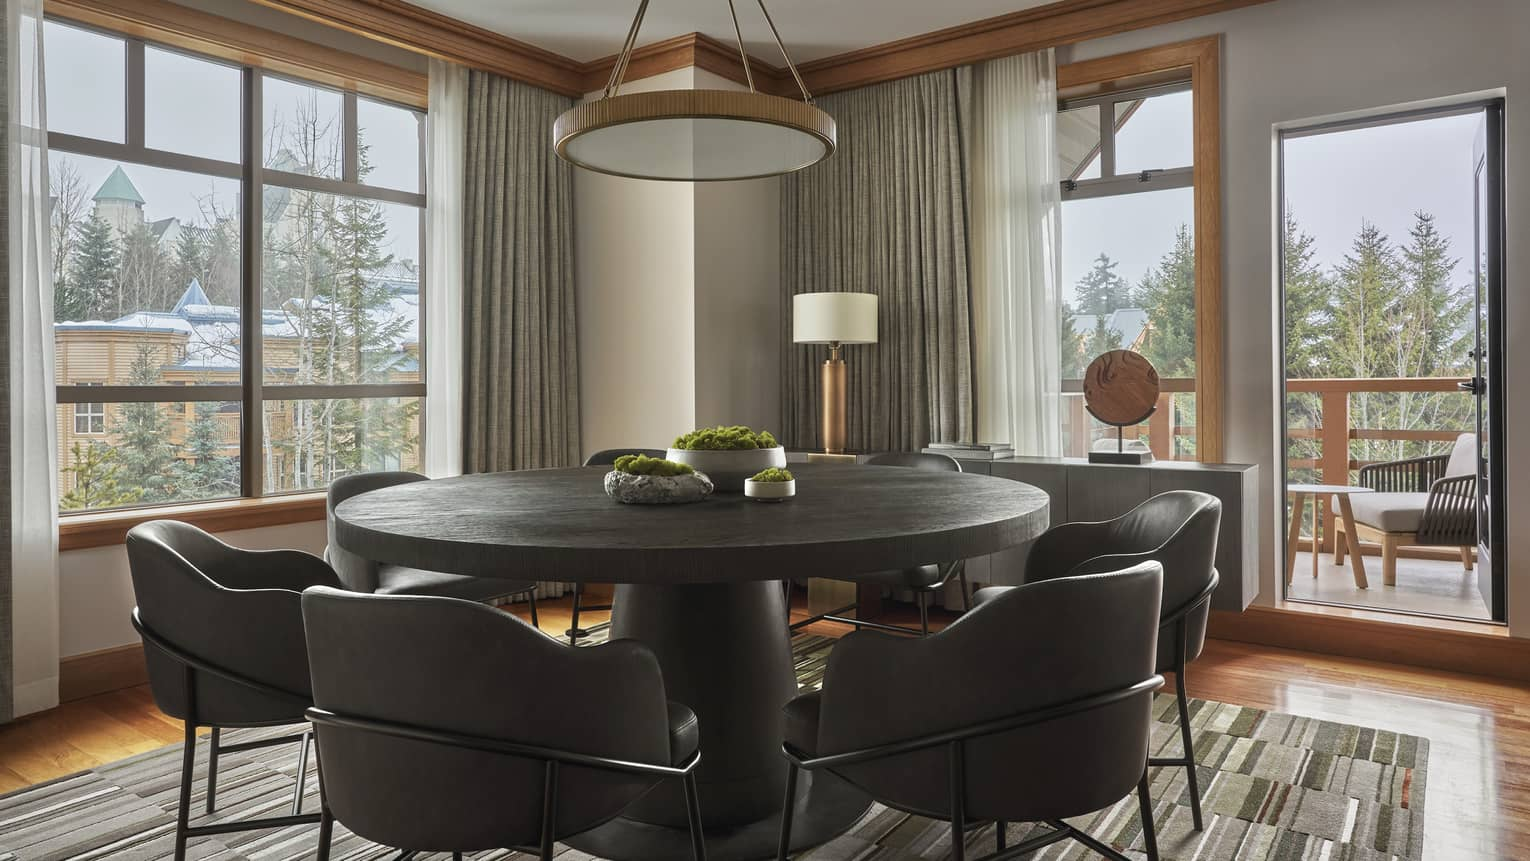 Round dining table with six modern, leather seats and a door leading out to a balcony